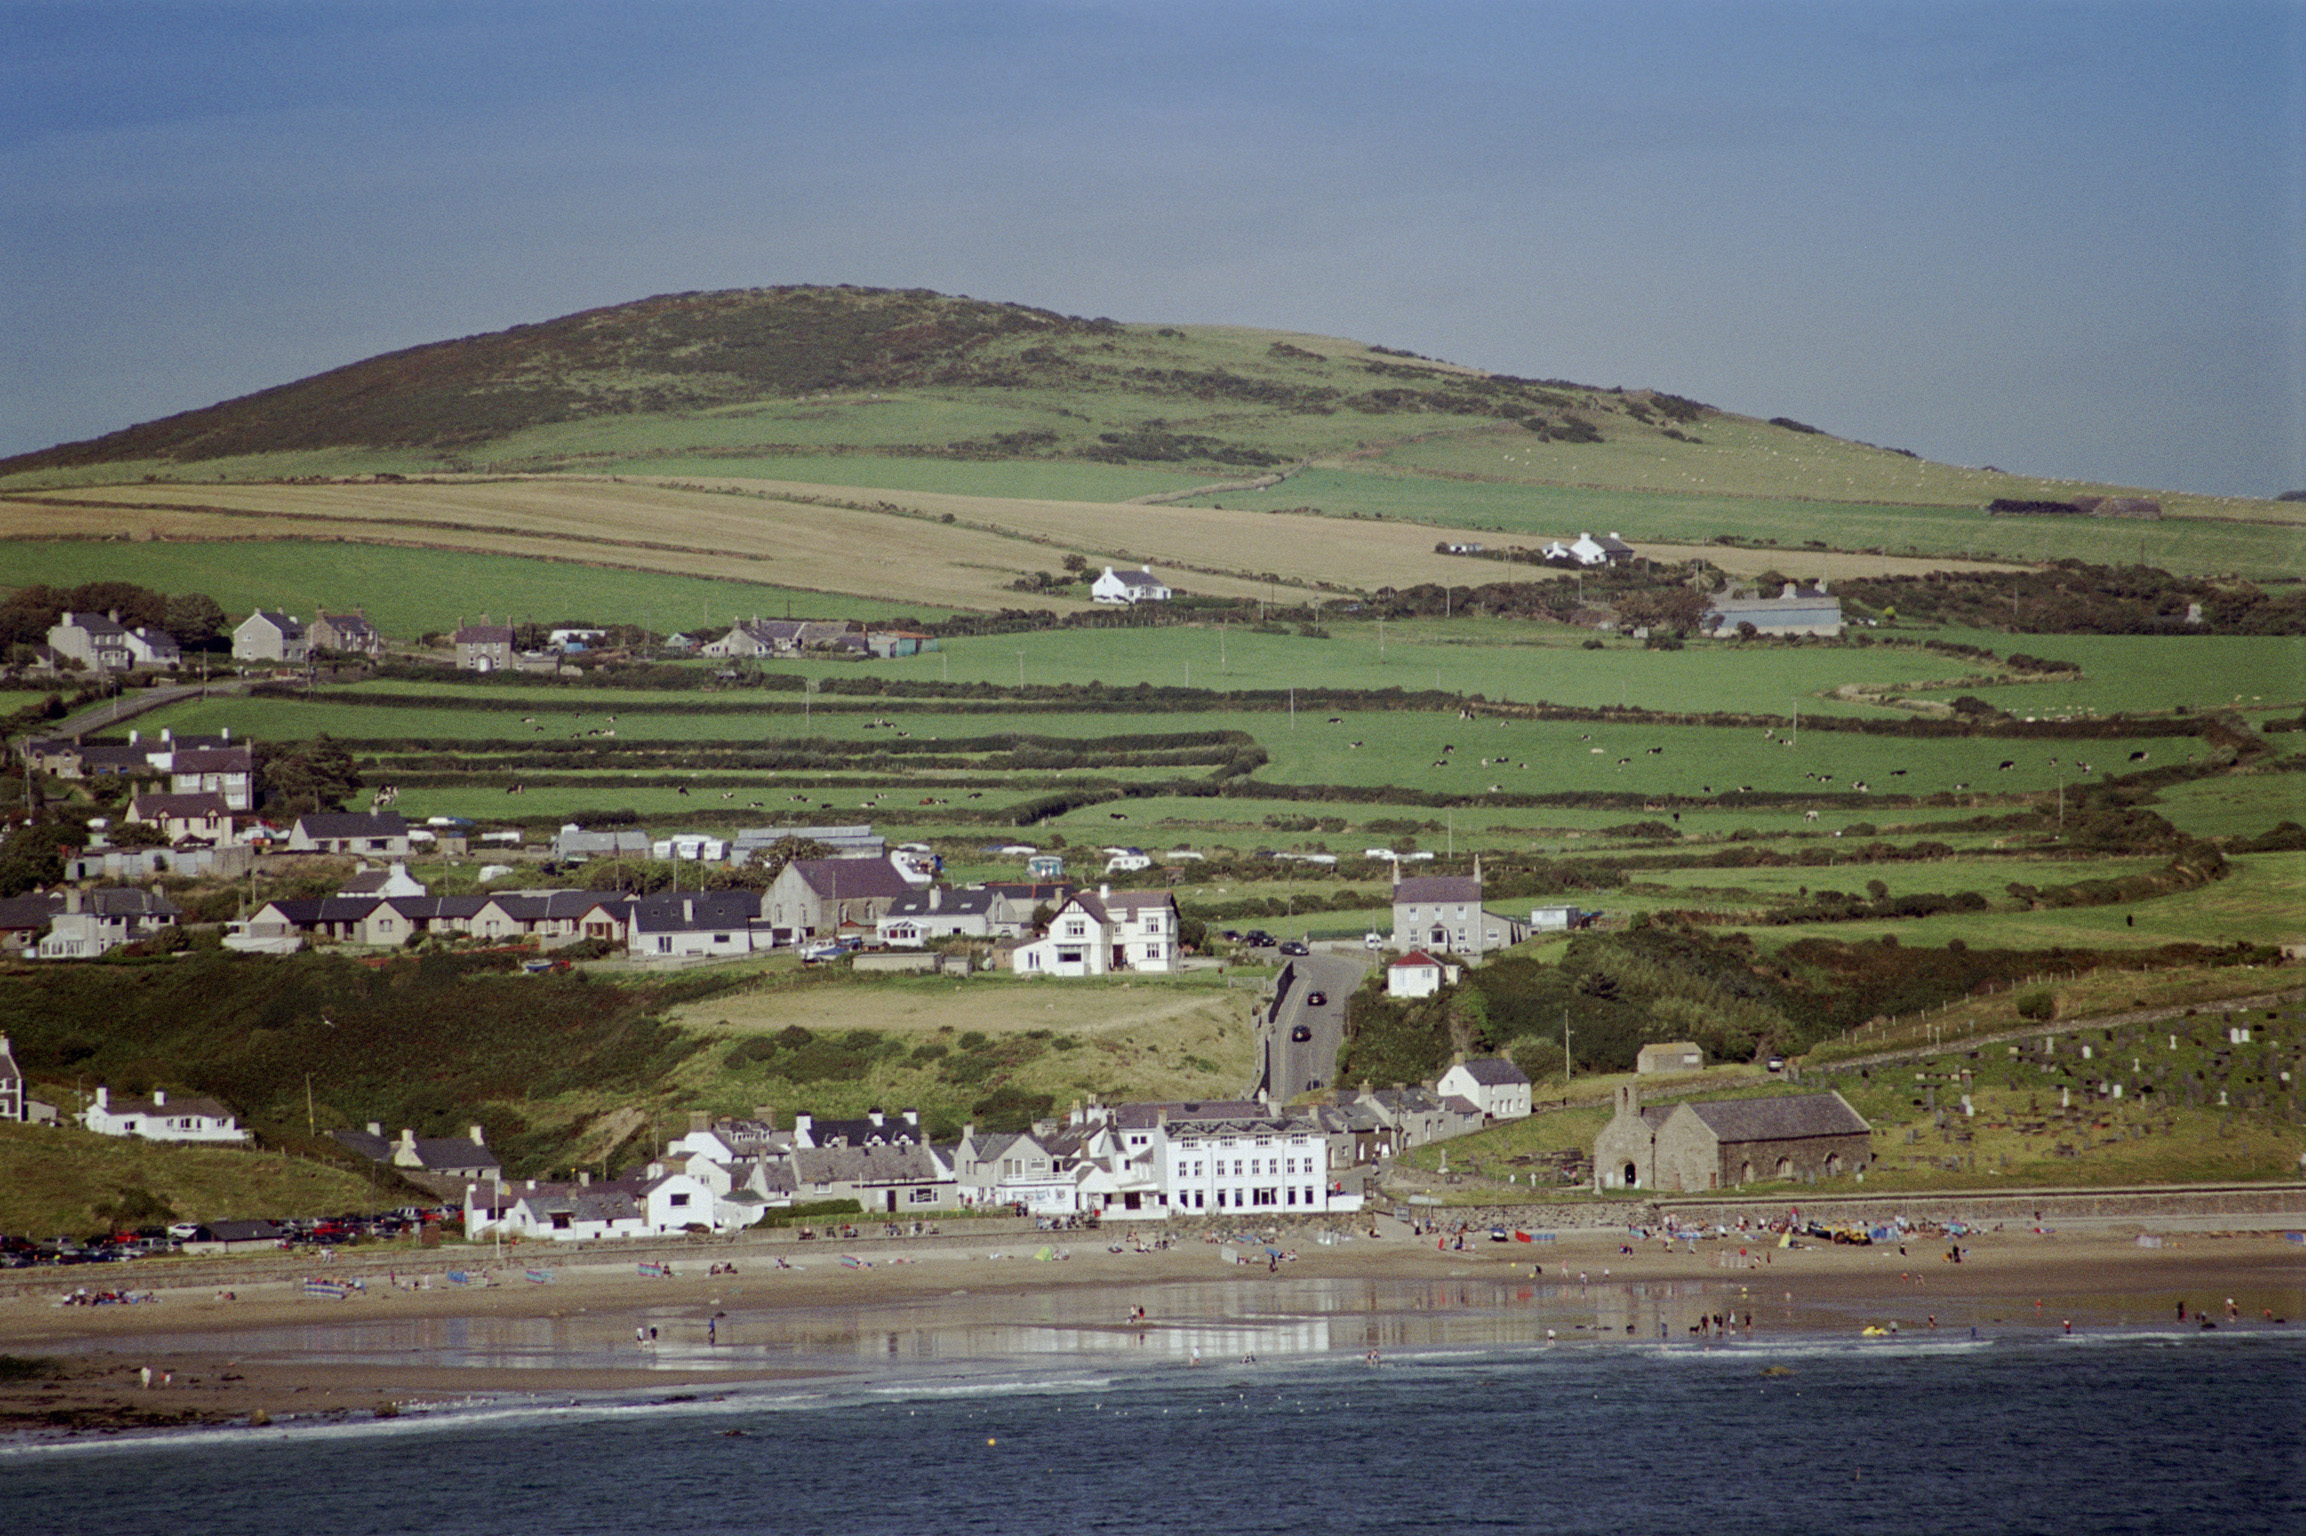 Picturesque view of Aberdaron on the Welsh coast of the Llyn peninsula set amongst lush green rolling hills